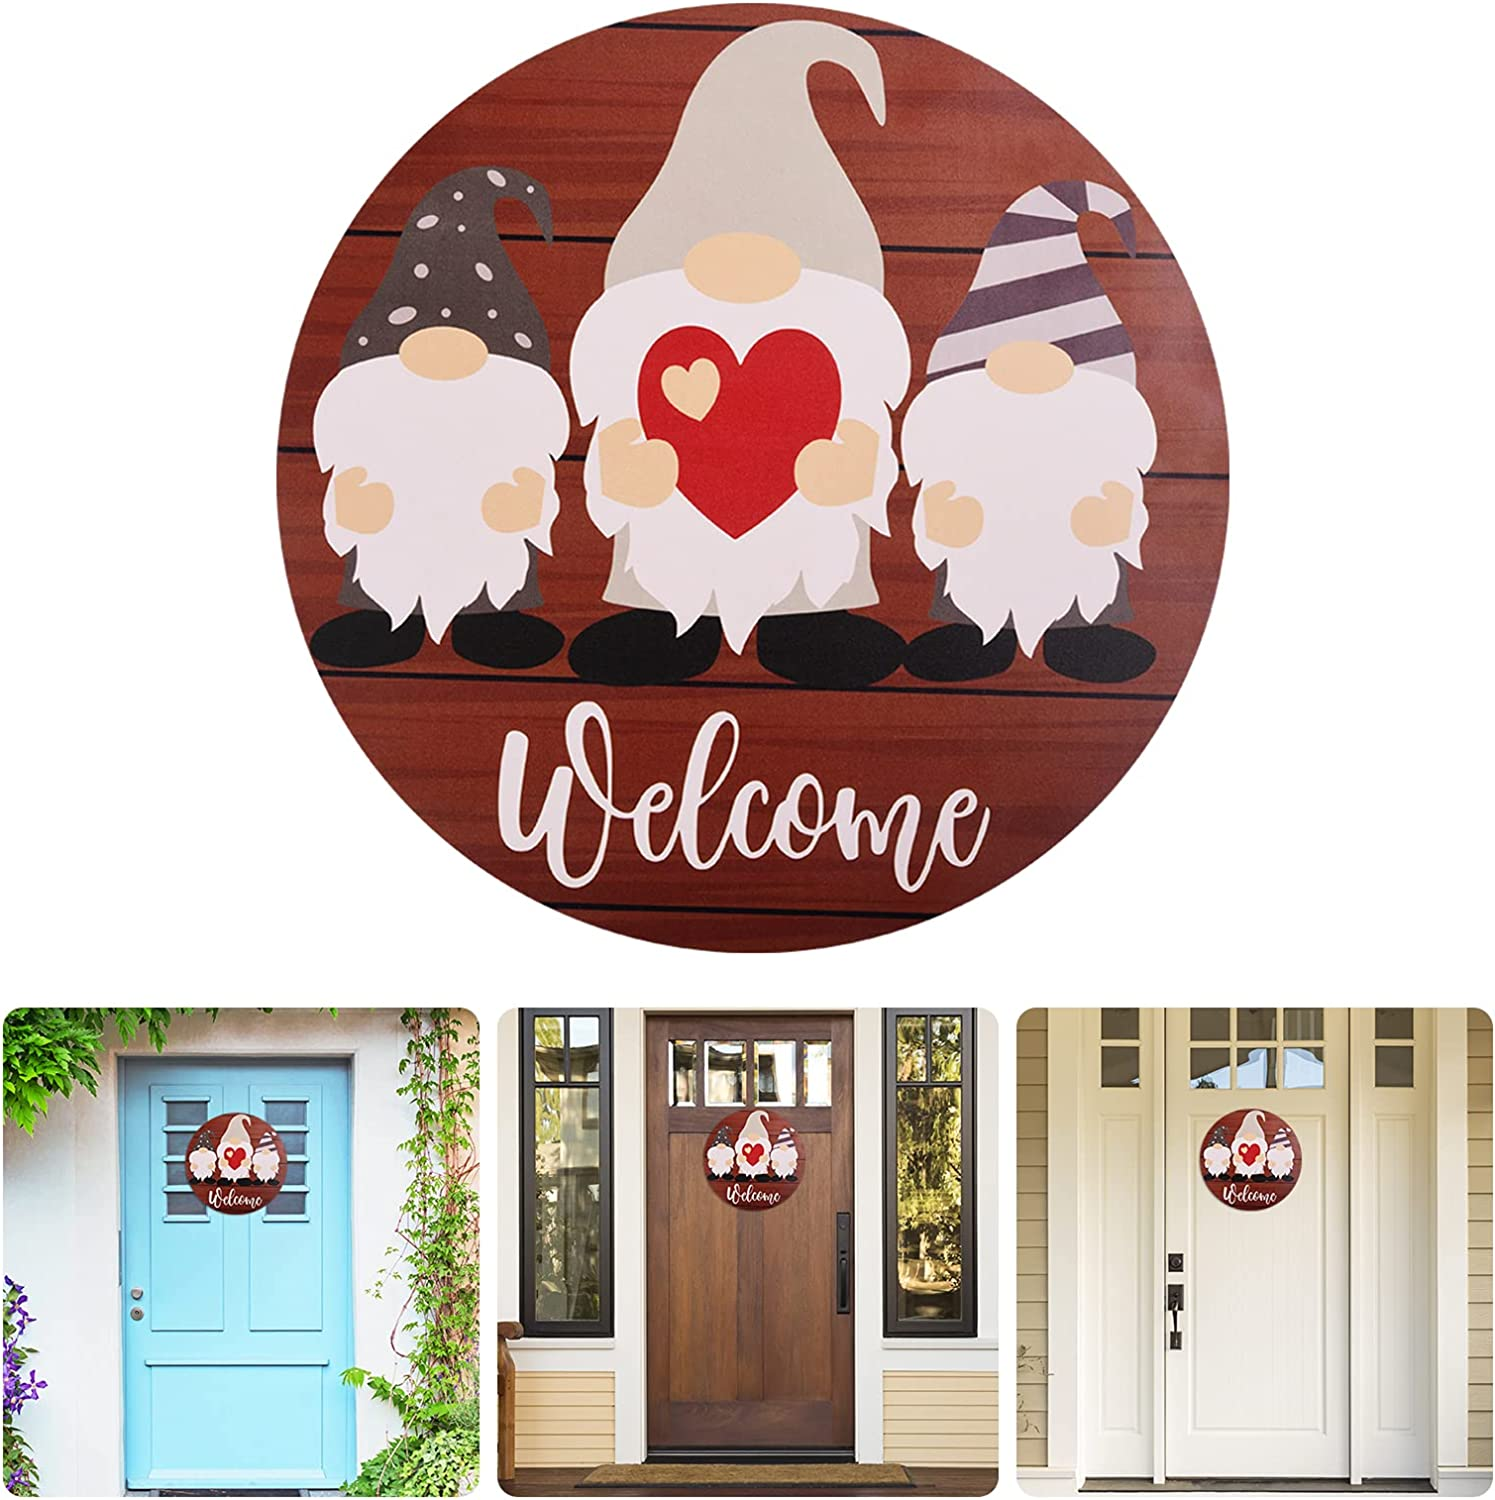 ANASTA Welcome Sign for Front Door, Gnome Welcome Door Sign, Front Door Decor for Farmhouse, Welcome Porch Wall Decorations, Rustic Wooden Welcome Sign, Home Decor for All Seasons